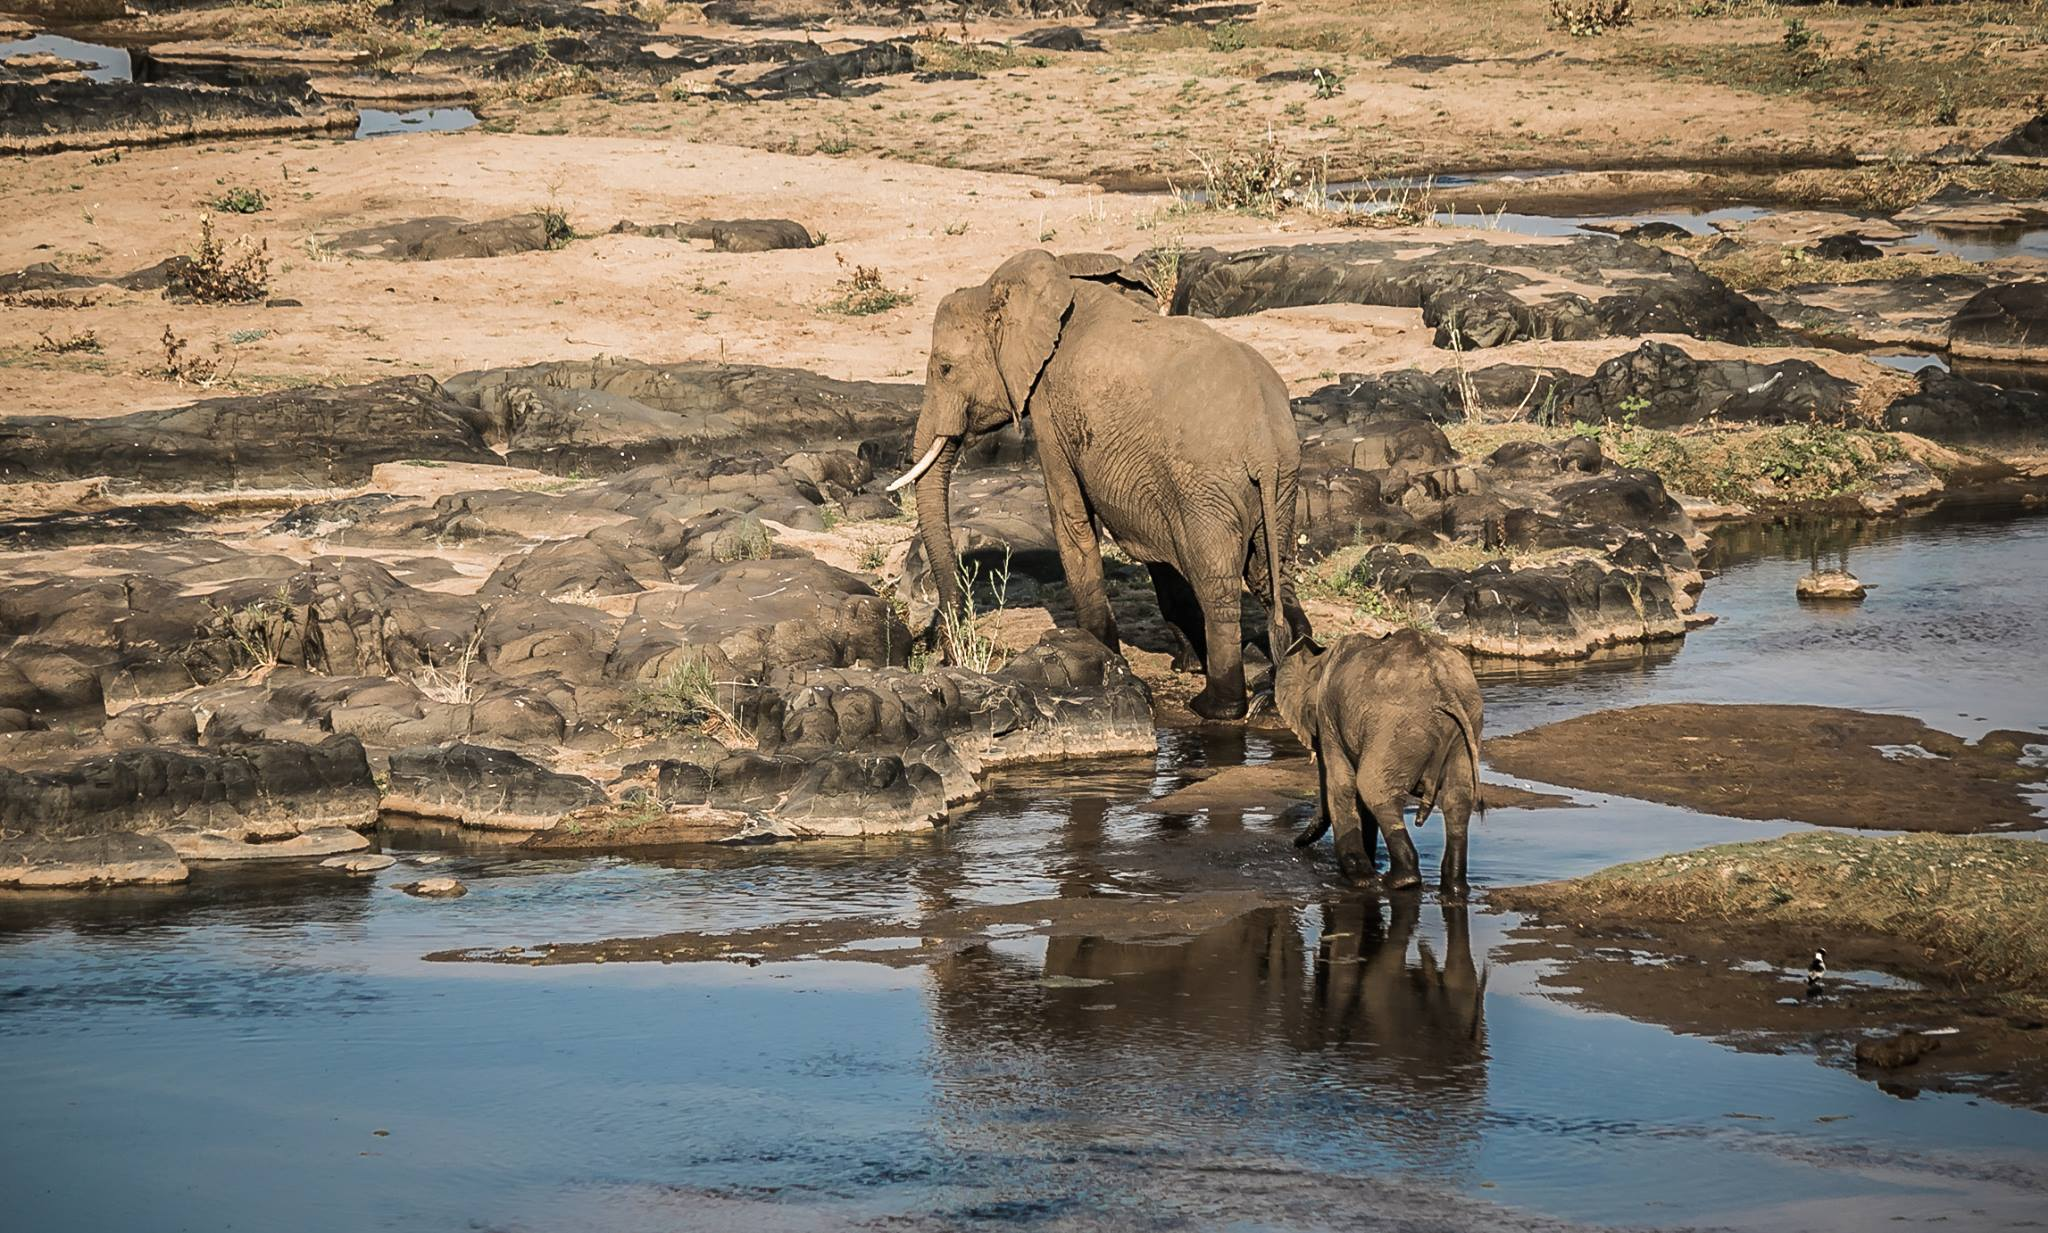 Elephants in the Olifants